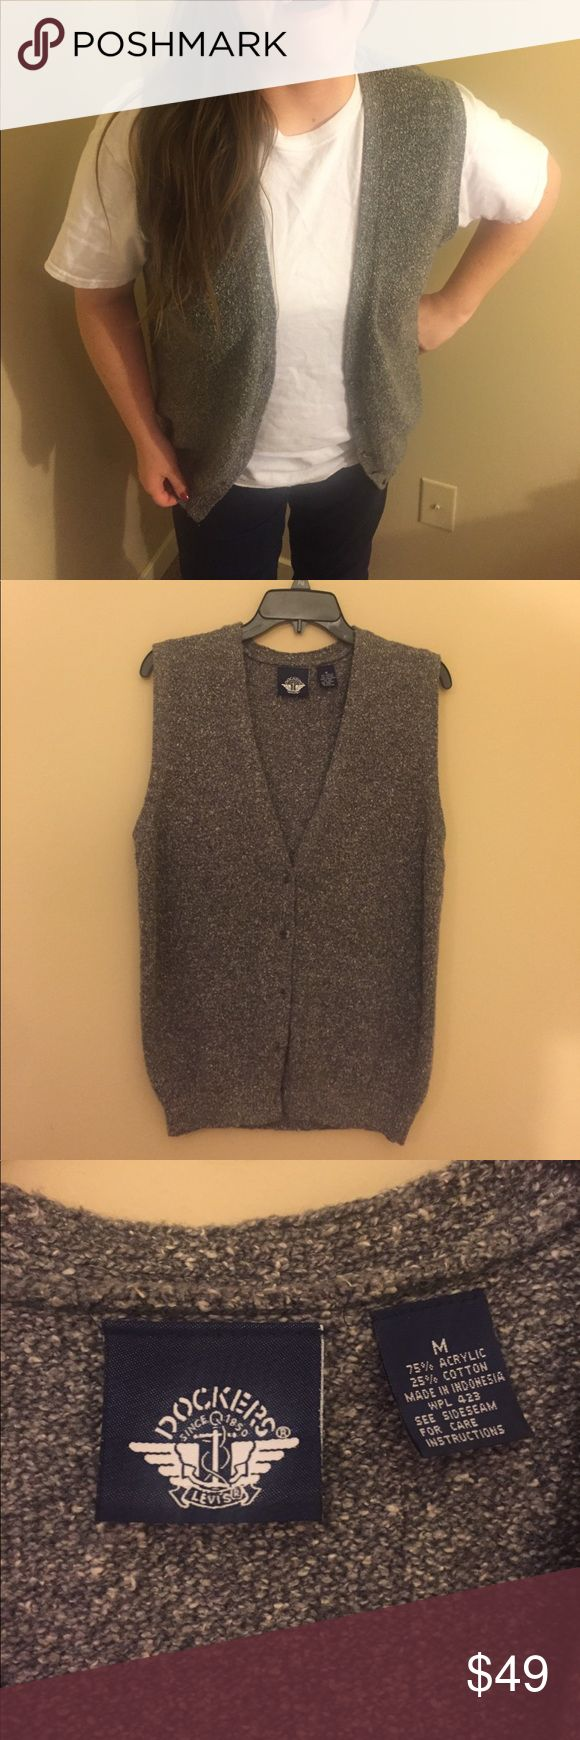 Dockers Levi's vest Size medium. Used item.  75% acrylic  25% cotton  Offers welcome! Dockers Jackets & Coats Vests